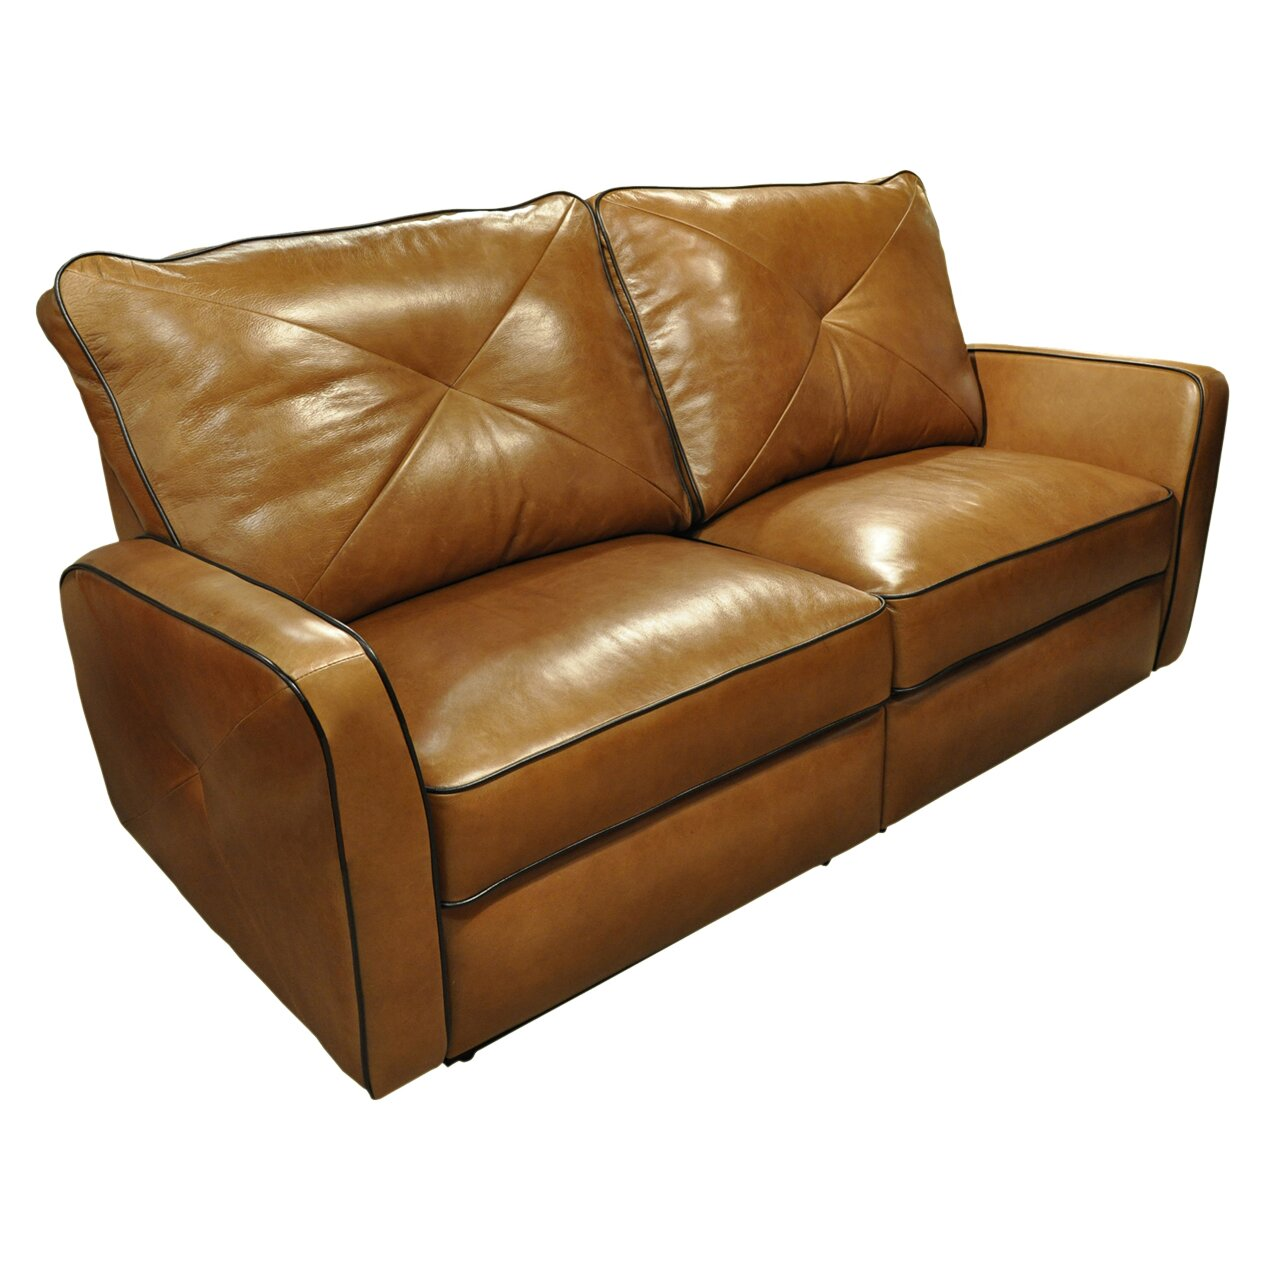 Omnia leather bahama leather reclining loveseat reviews wayfair Leather loveseat recliners